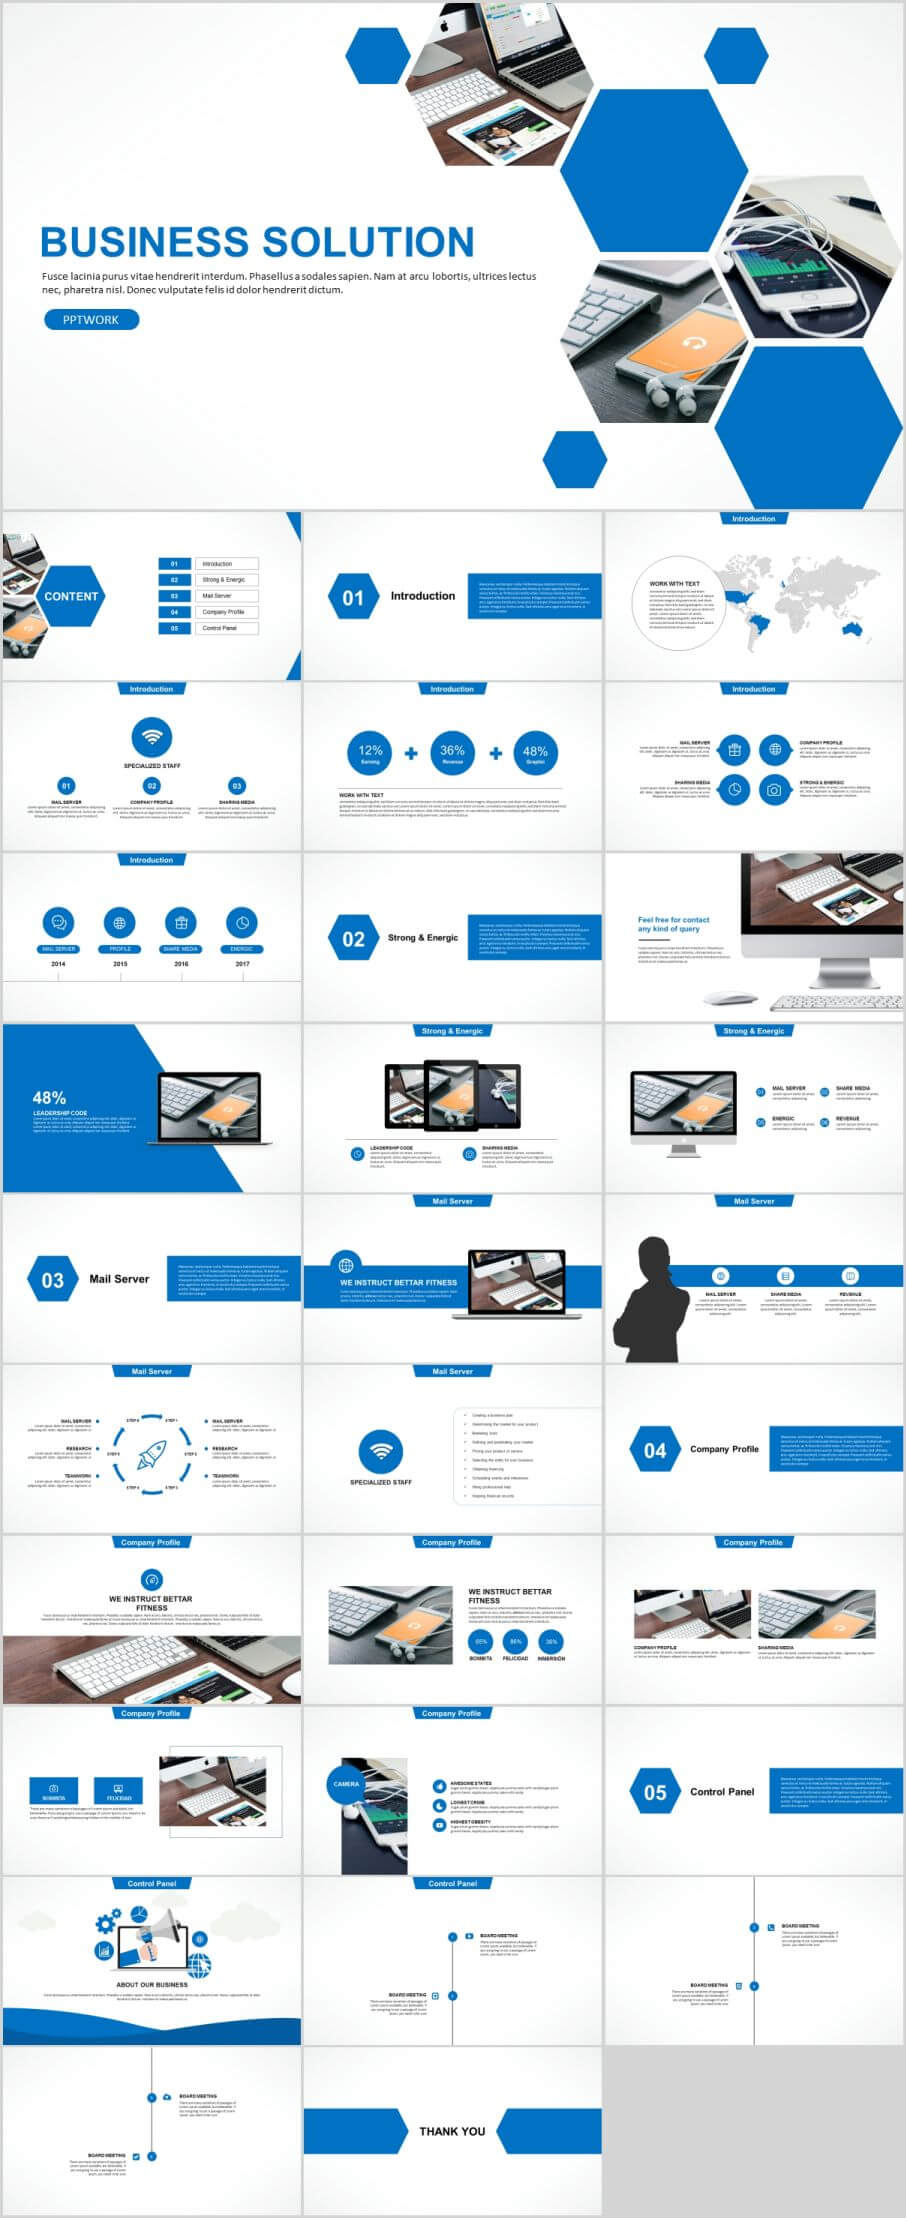 30+ Blue Business Solution Powerpoint Templates Intended For Powerpoint Template Resolution